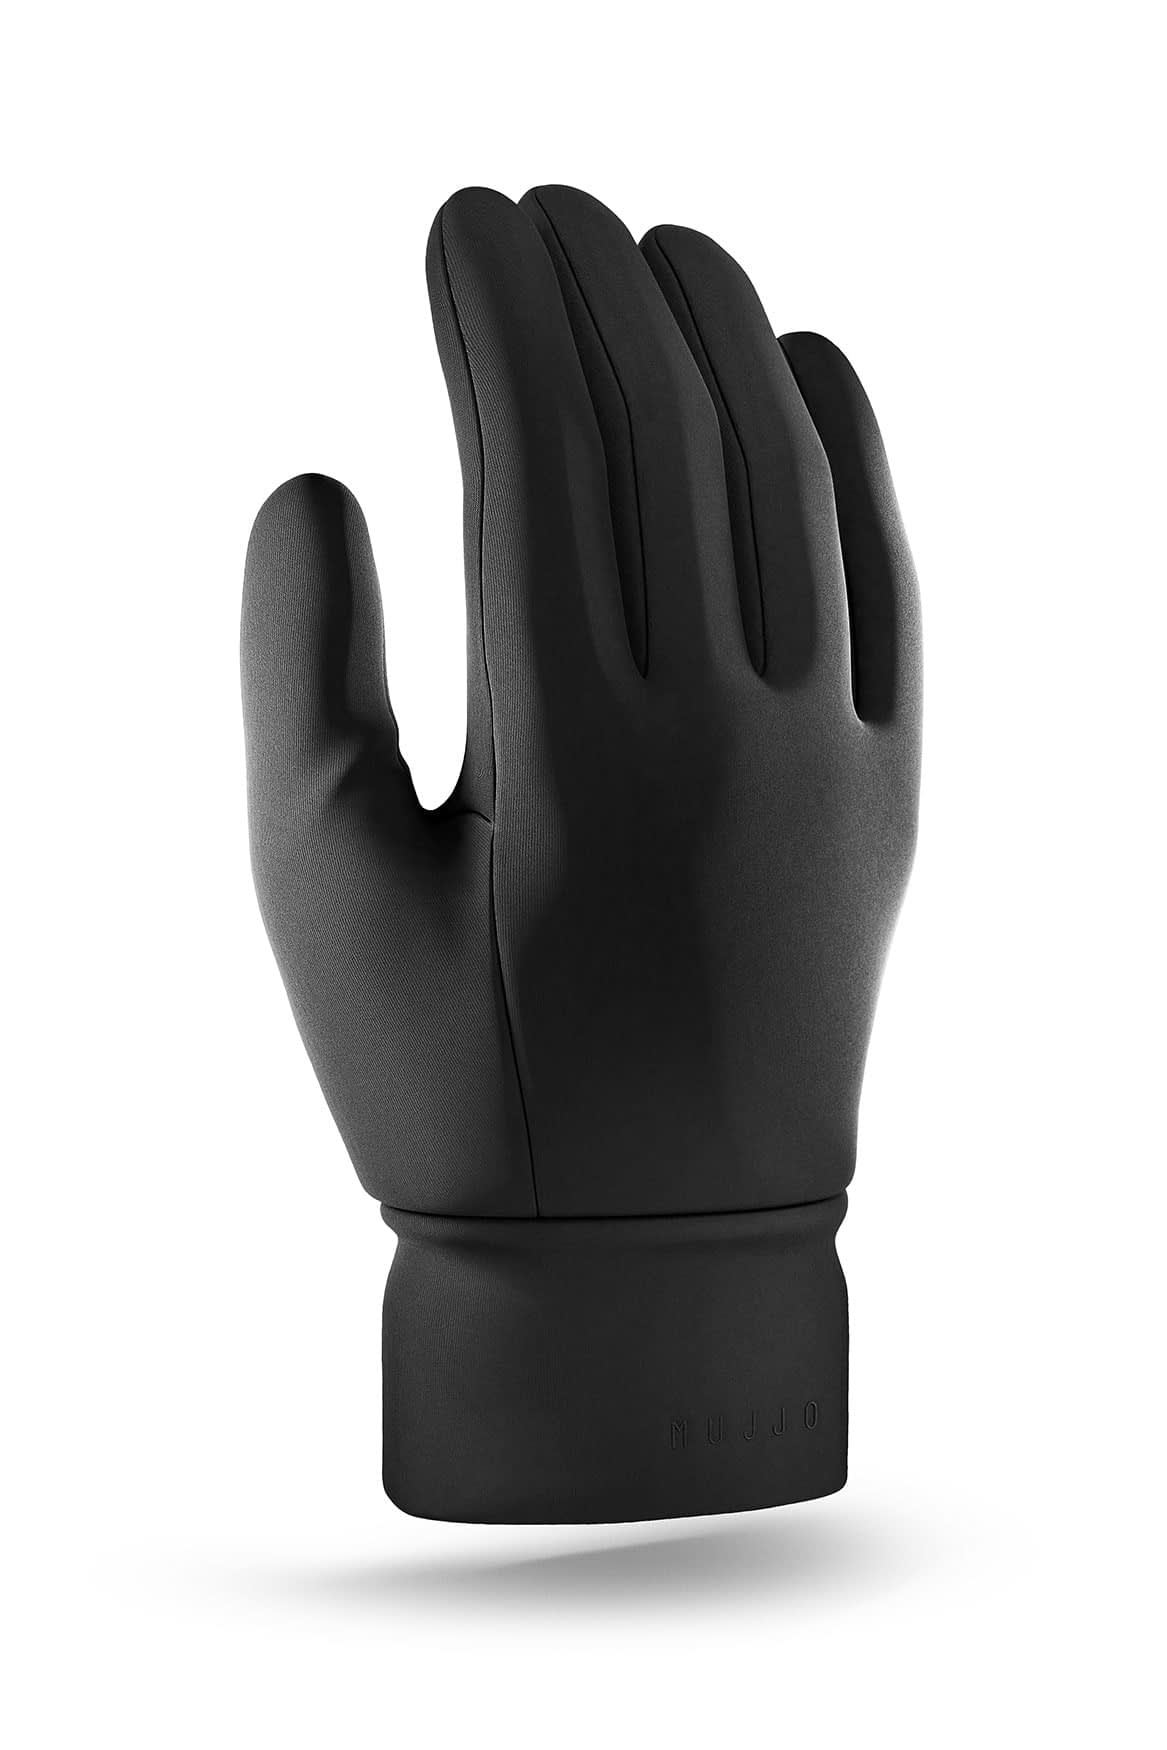 Double Insulated Touchscreen Gloves Packshot 03